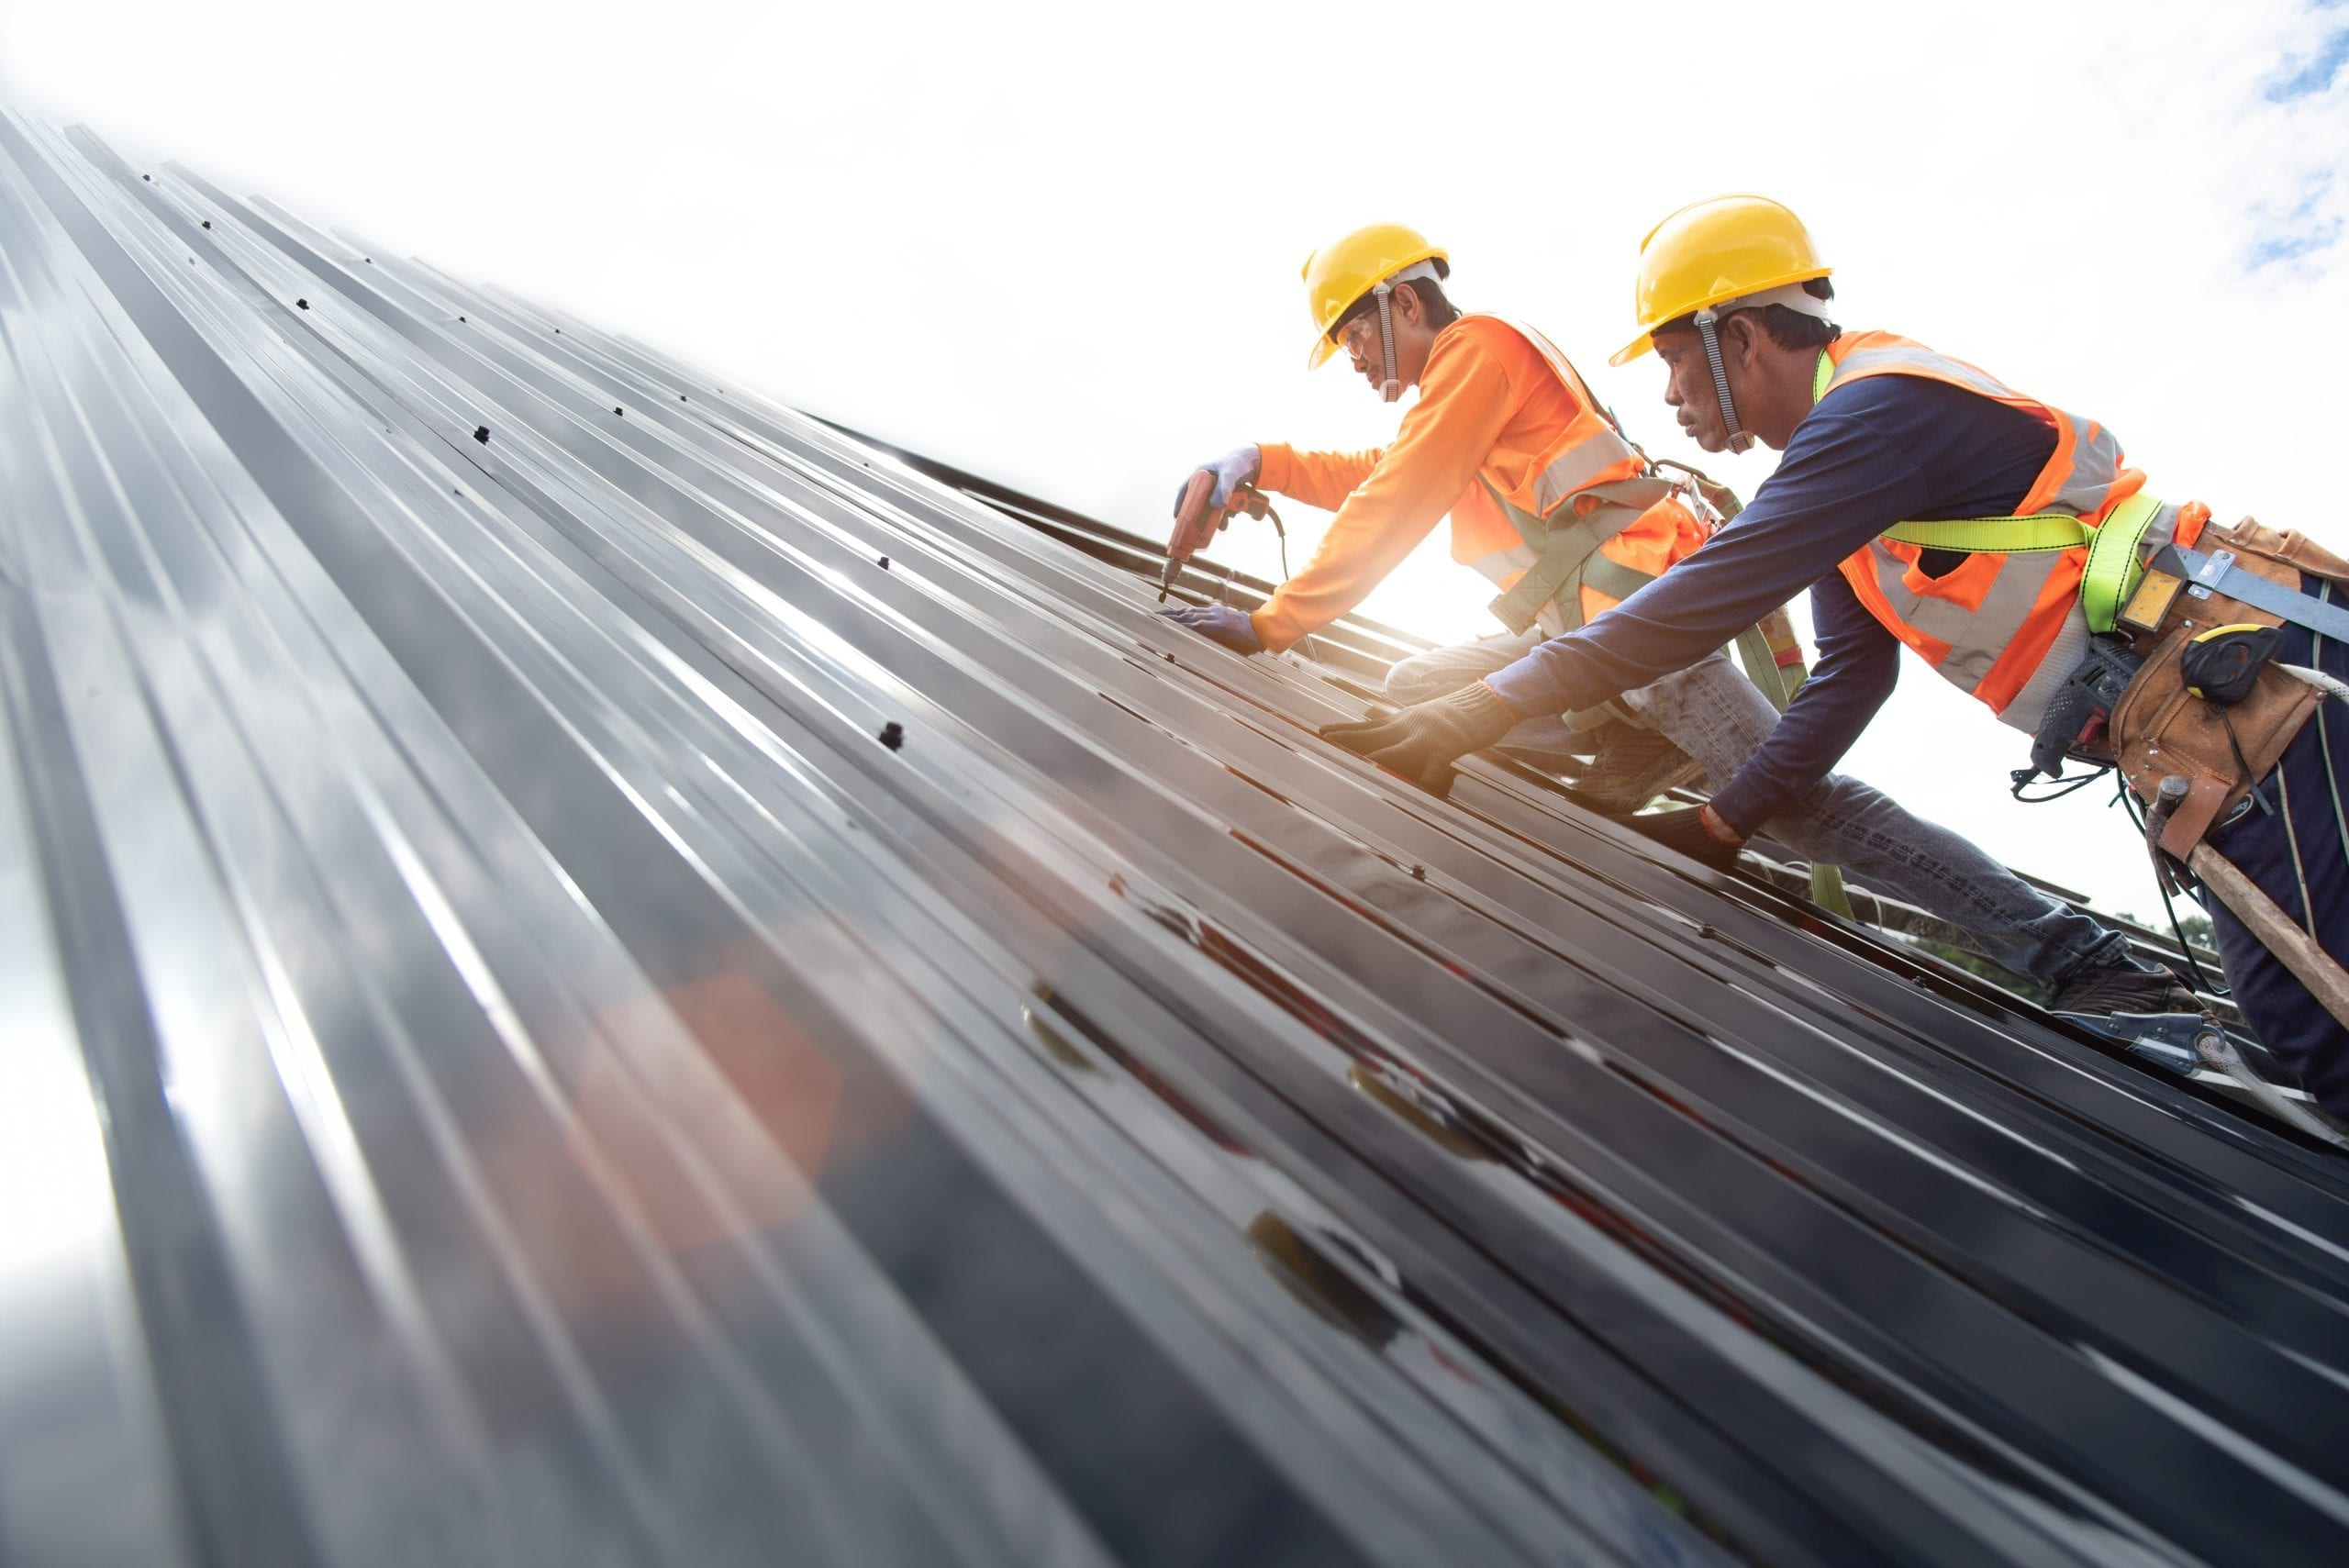 Dangerous jobs that need accidental death insurance